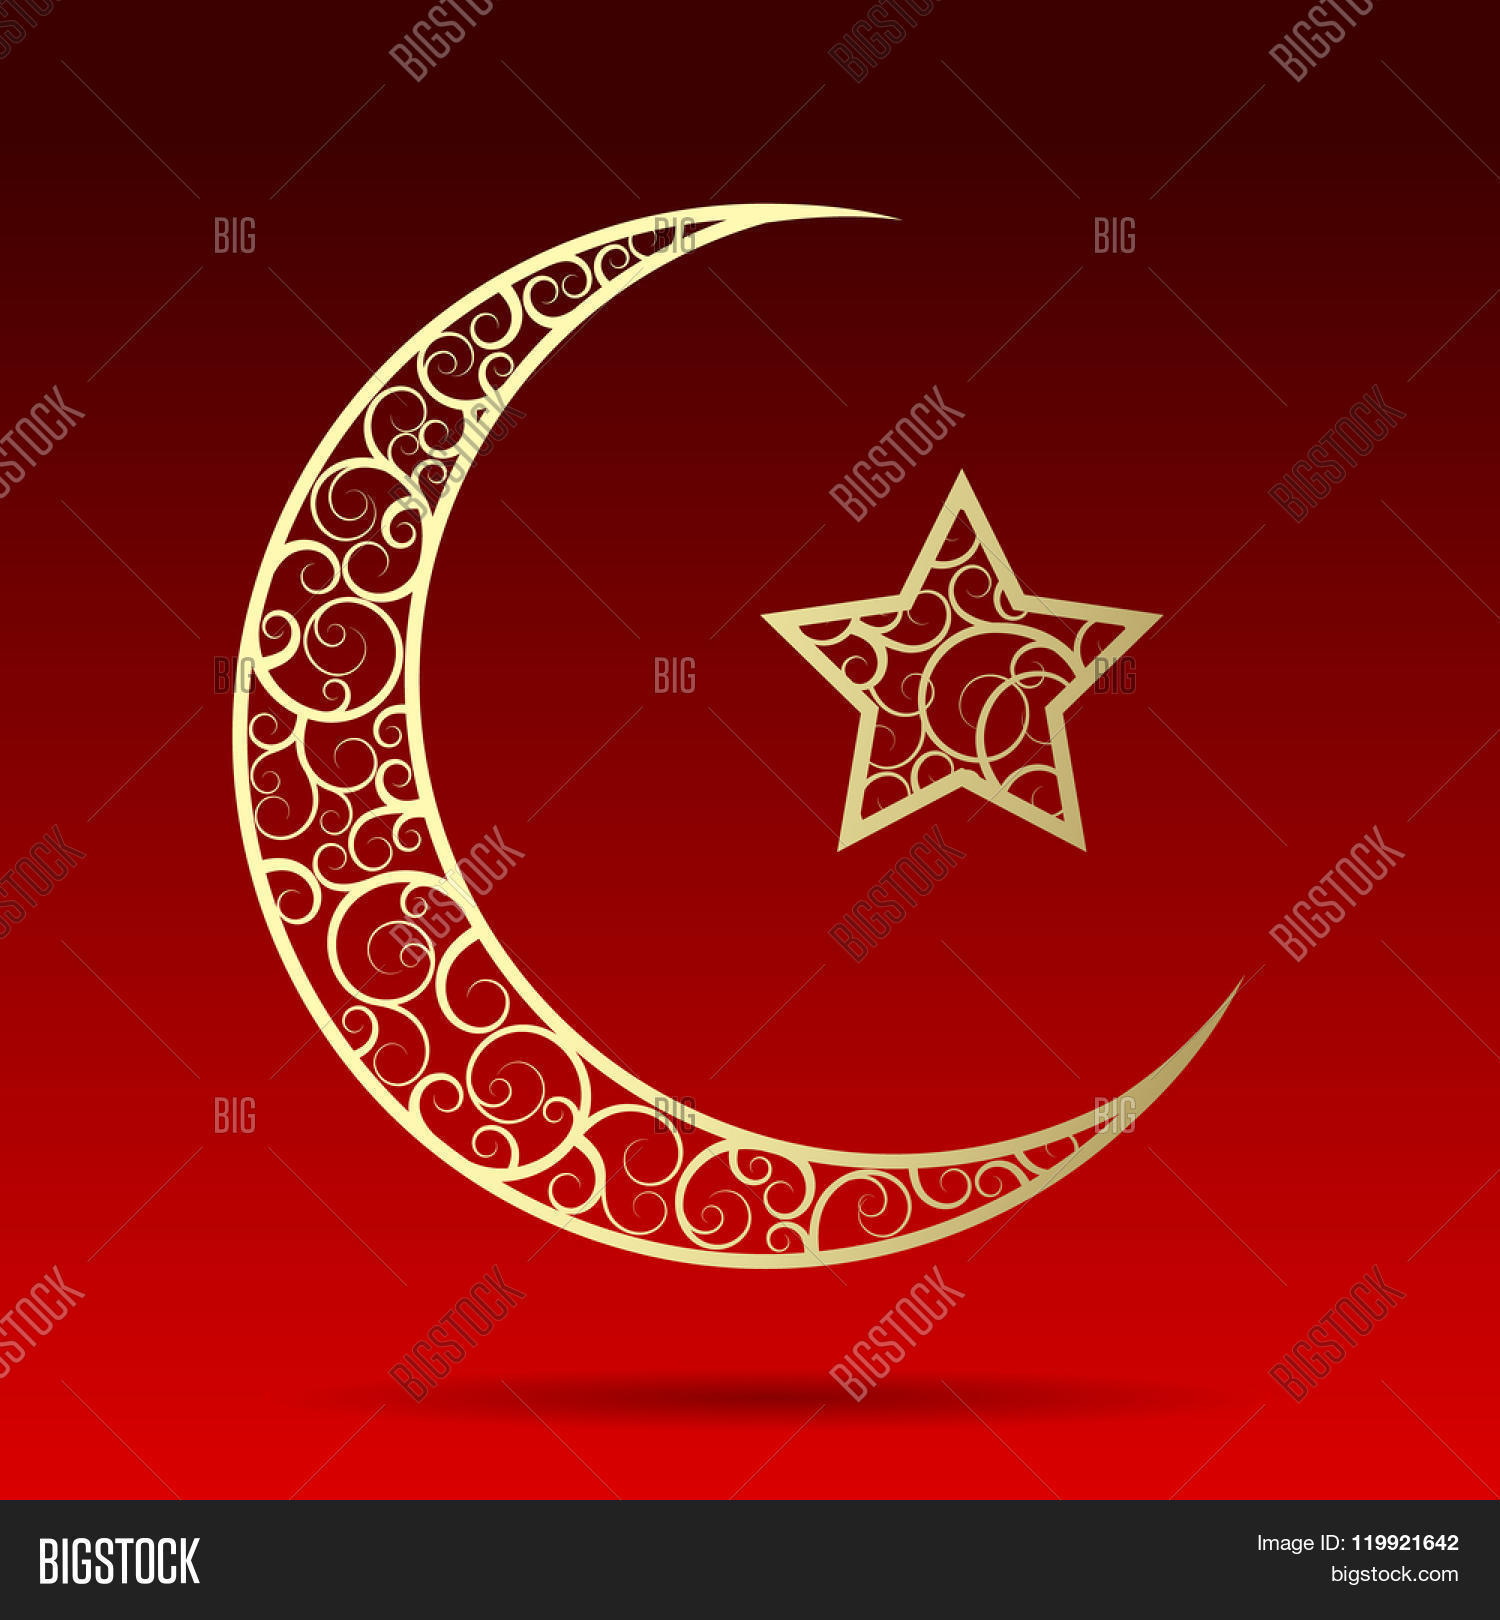 Crescent gold moon star isolated on image photo bigstock crescent gold moon with star isolated on dark red background islamic design ramadan kareem greeting biocorpaavc Gallery